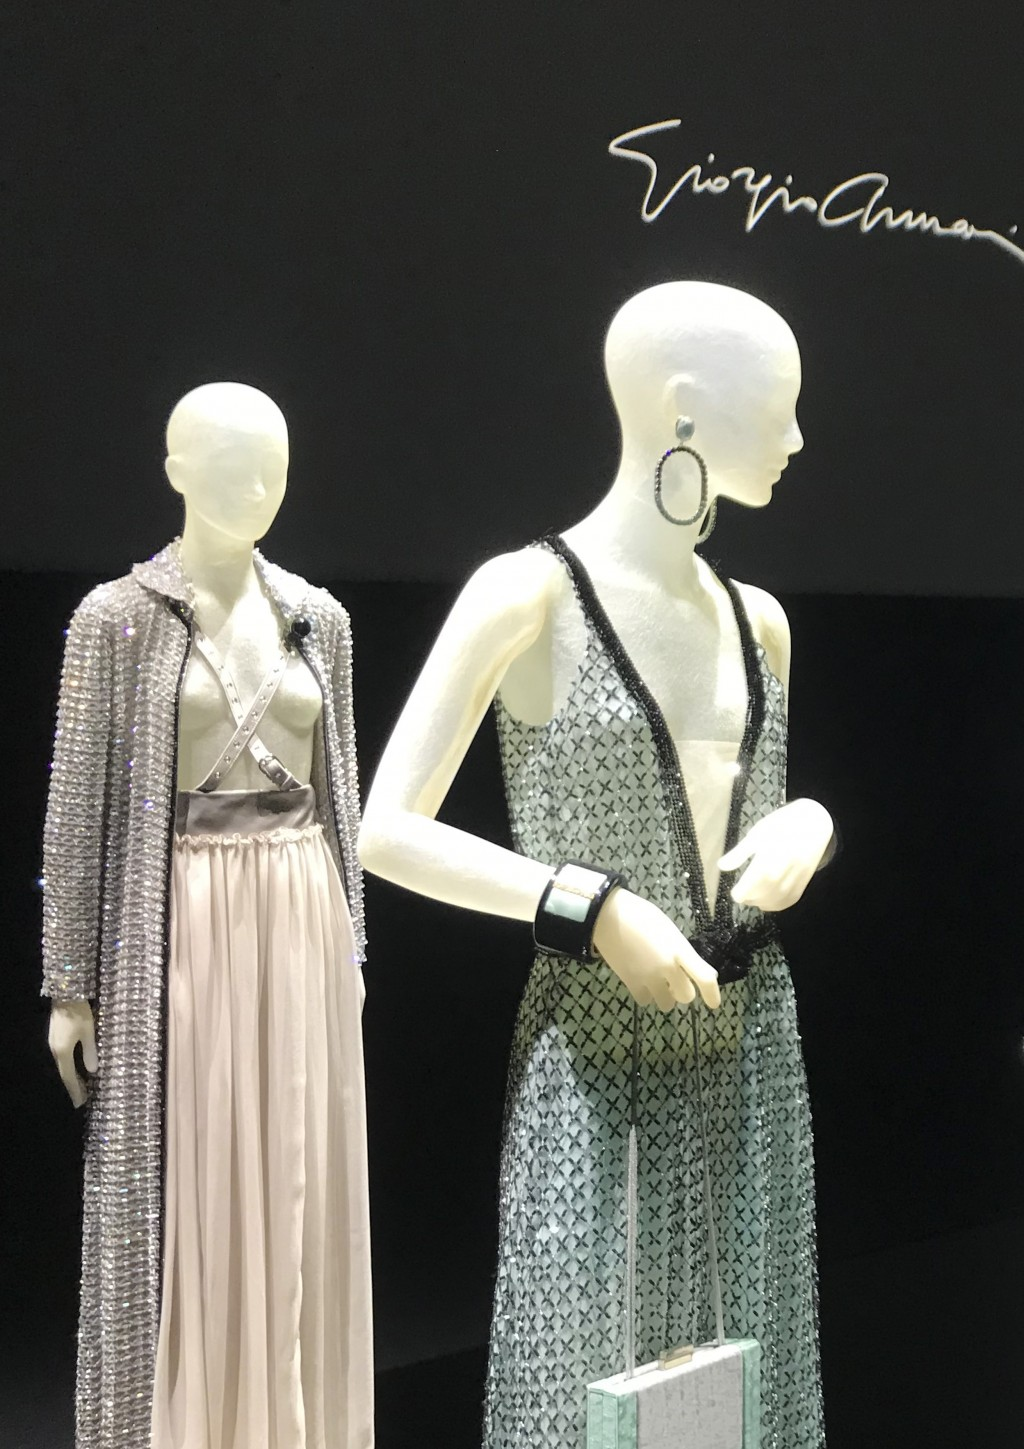 Creations displayed at a presentation as part of the Giorgio Armani 2021 women's spring-summer ready-to-wear collection during the fashion week in Mil...